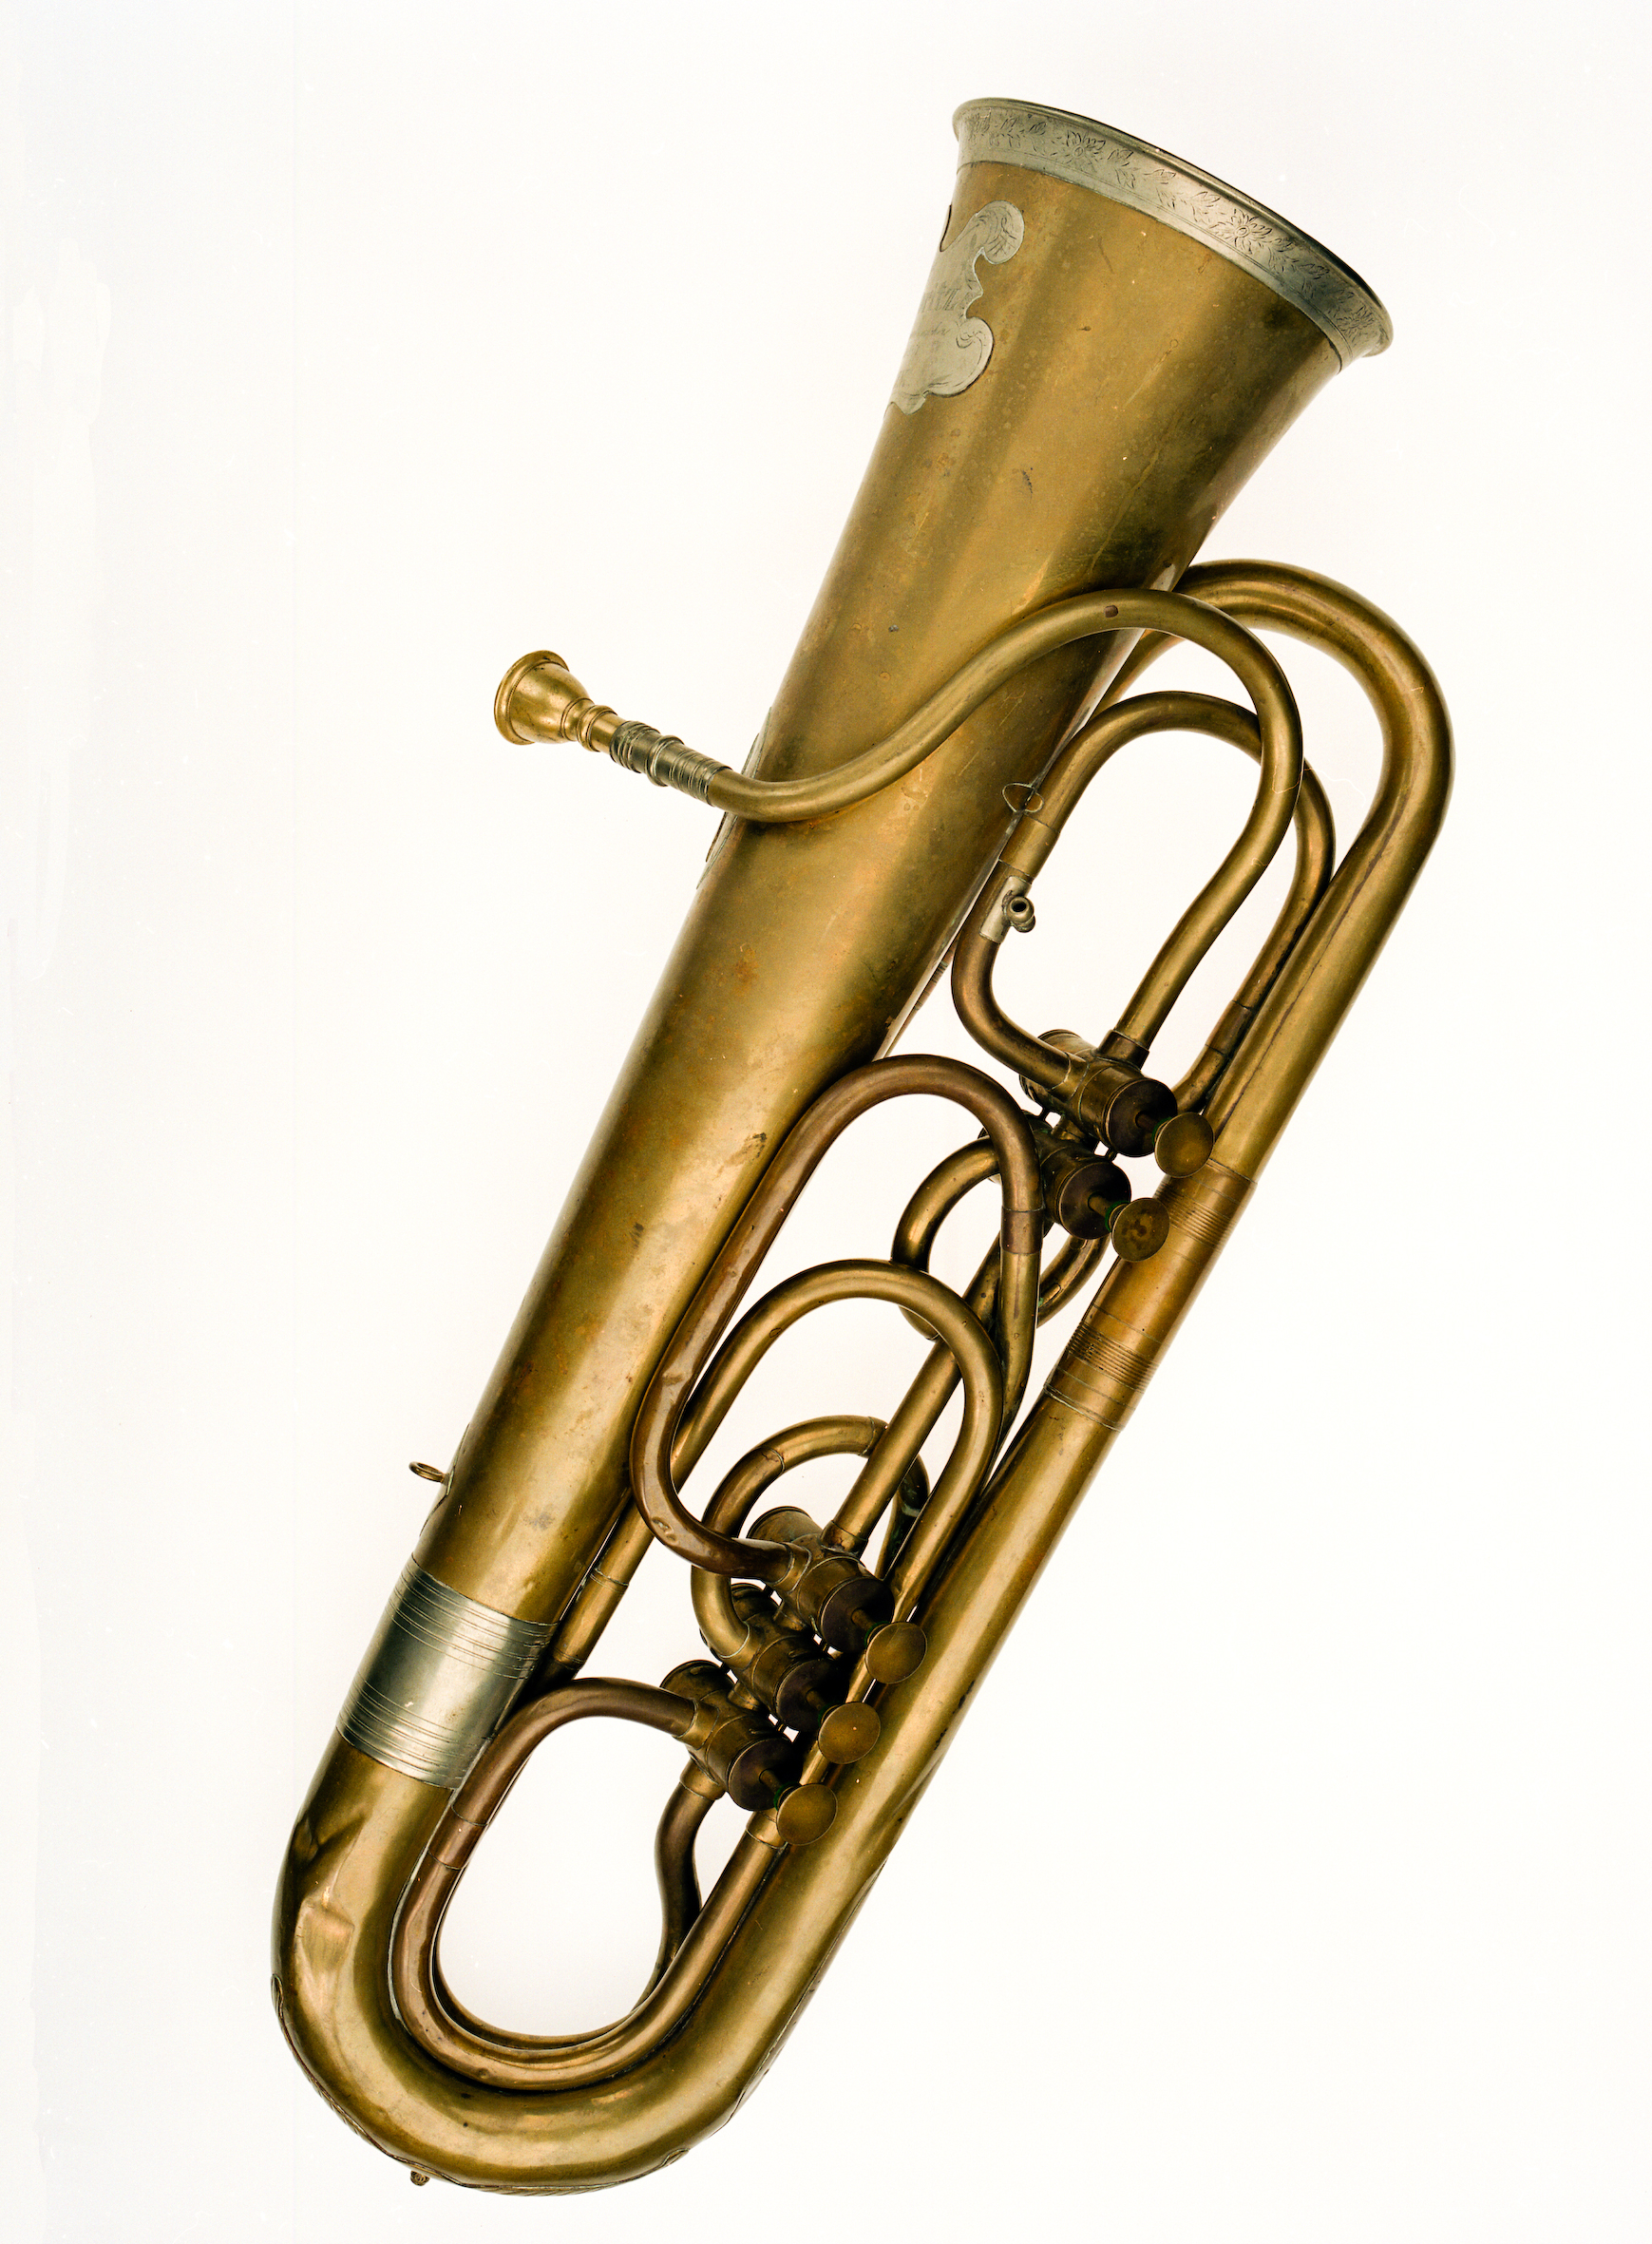 c99e9ca31d Tuba by Wieprecht   Moritz as described in Prussian patent No.19.